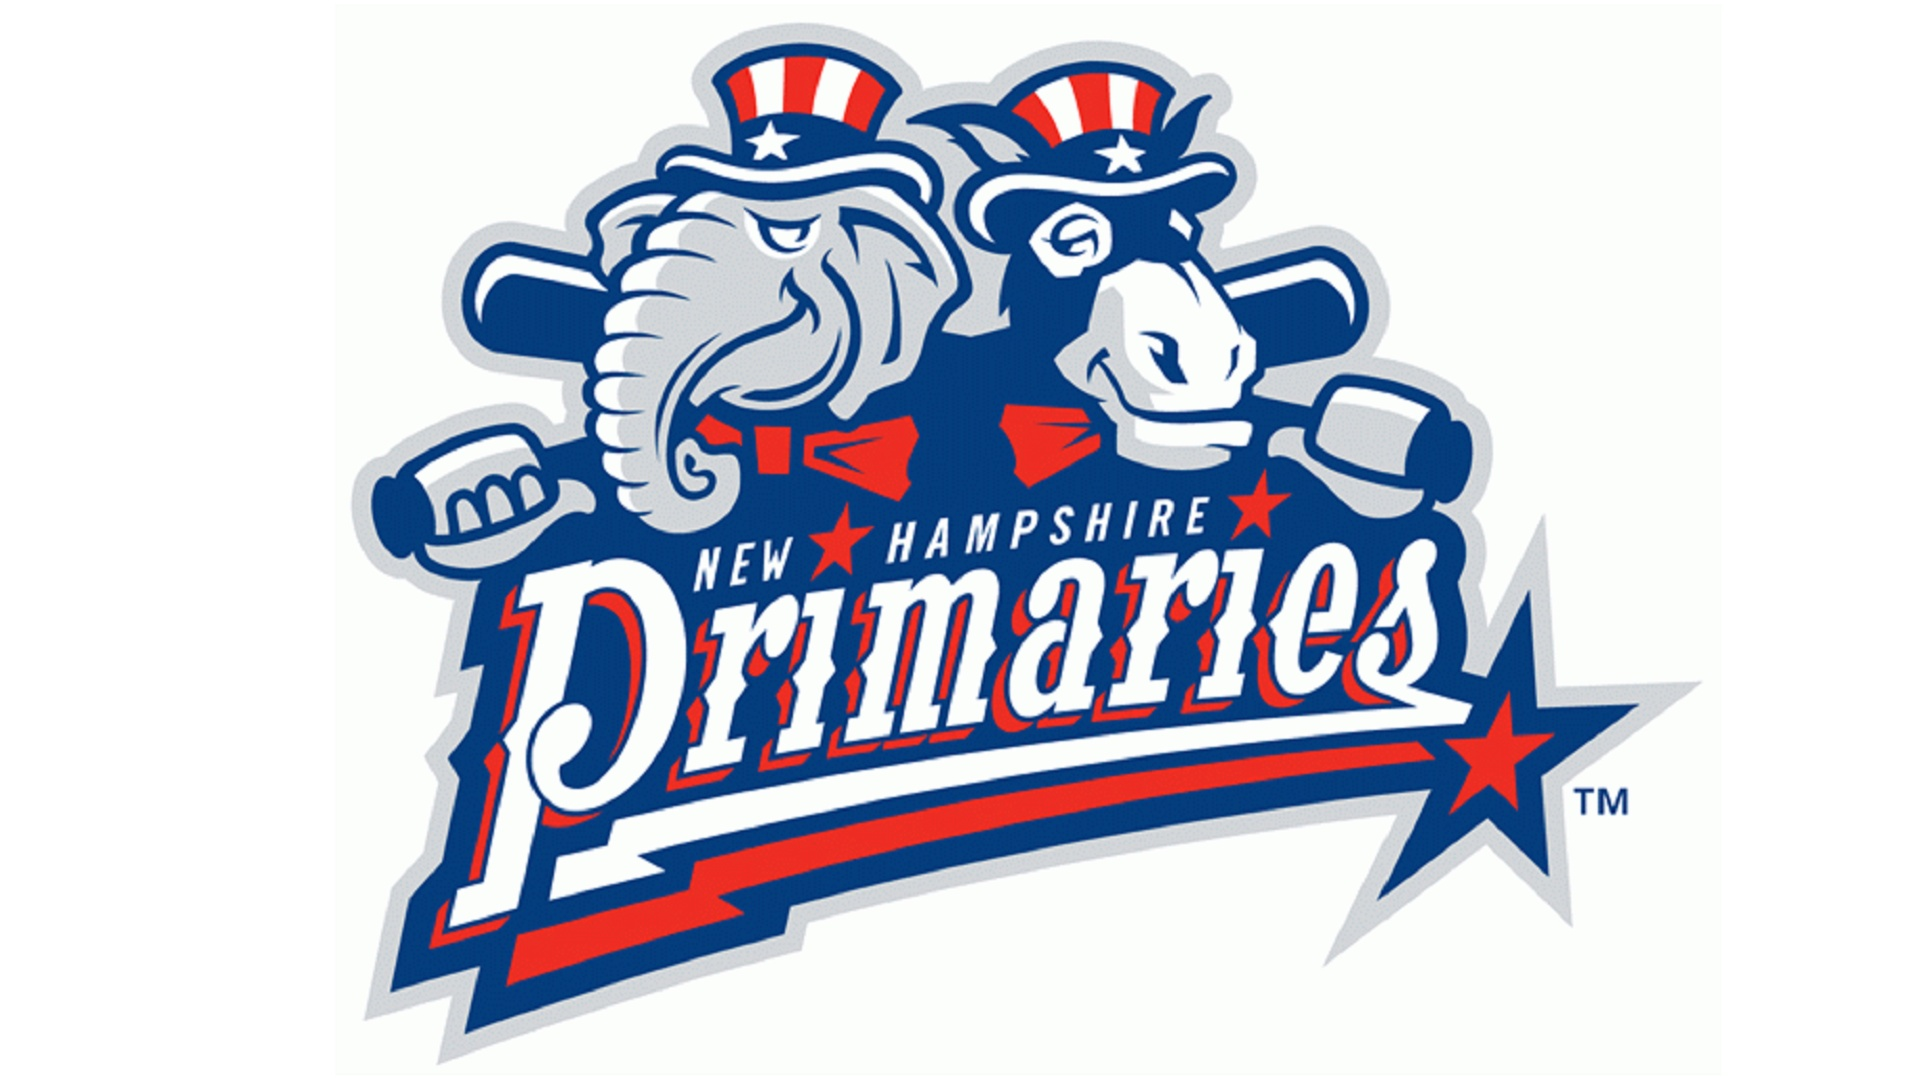 There was once a Double-A team named the New Hampshire ...